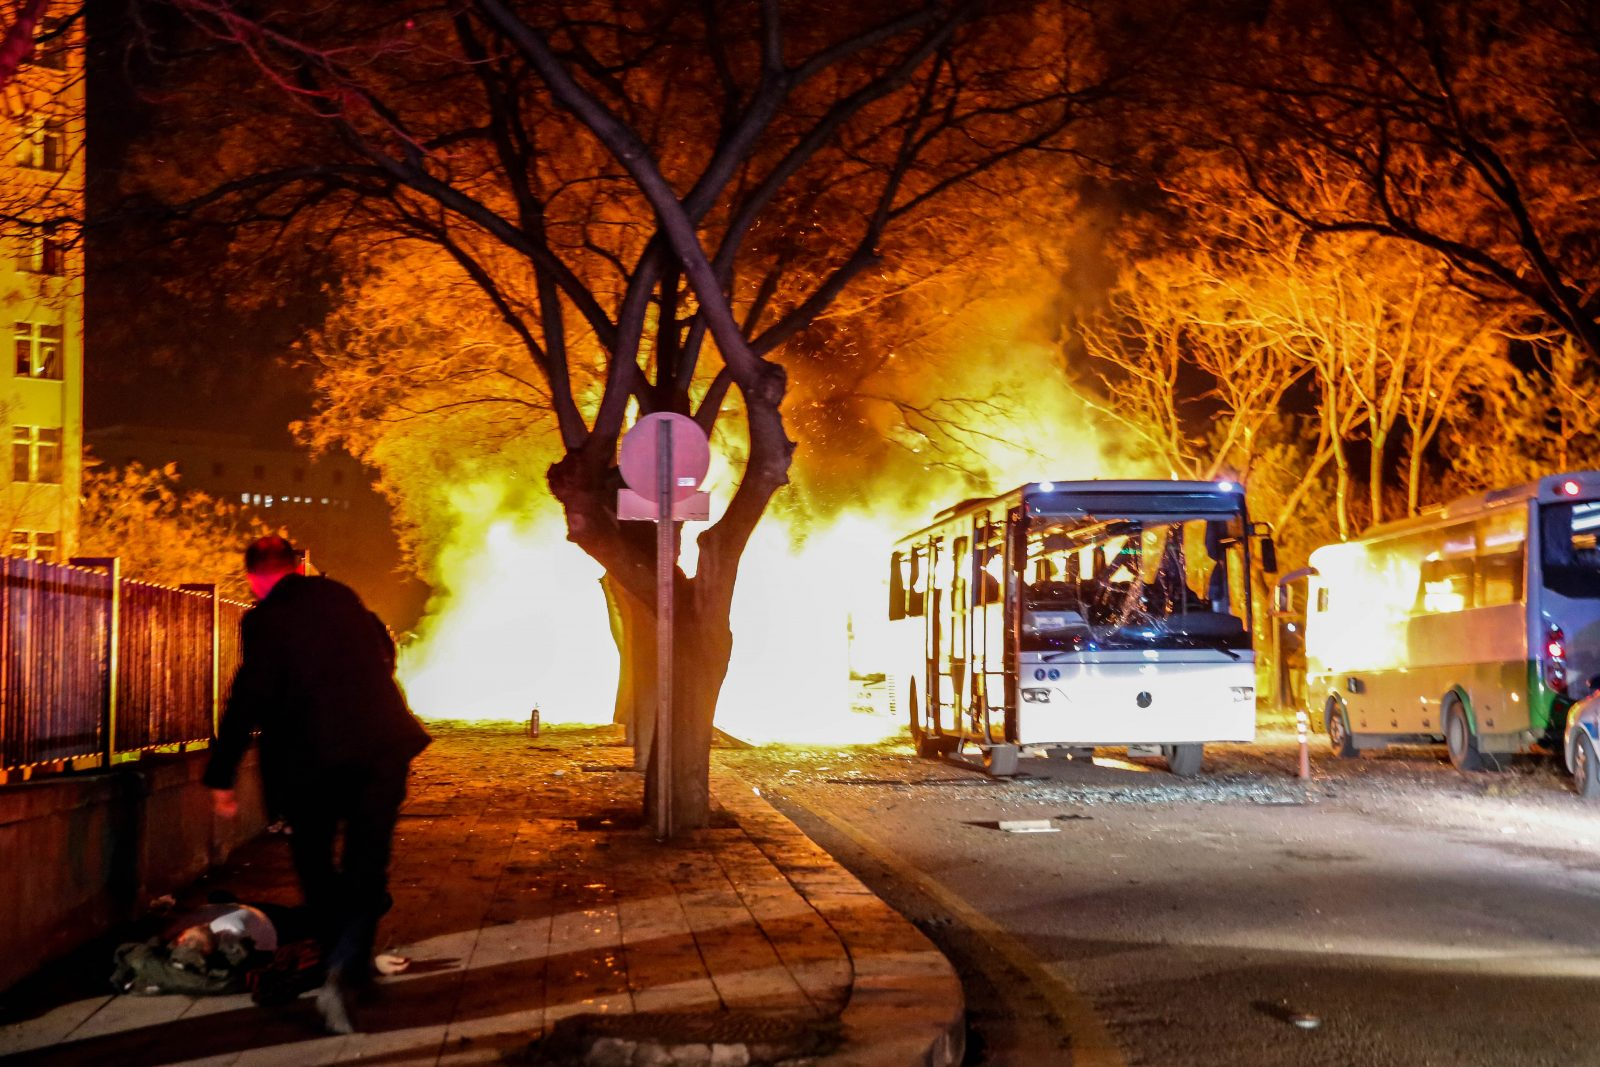 busses burning on street after explosion